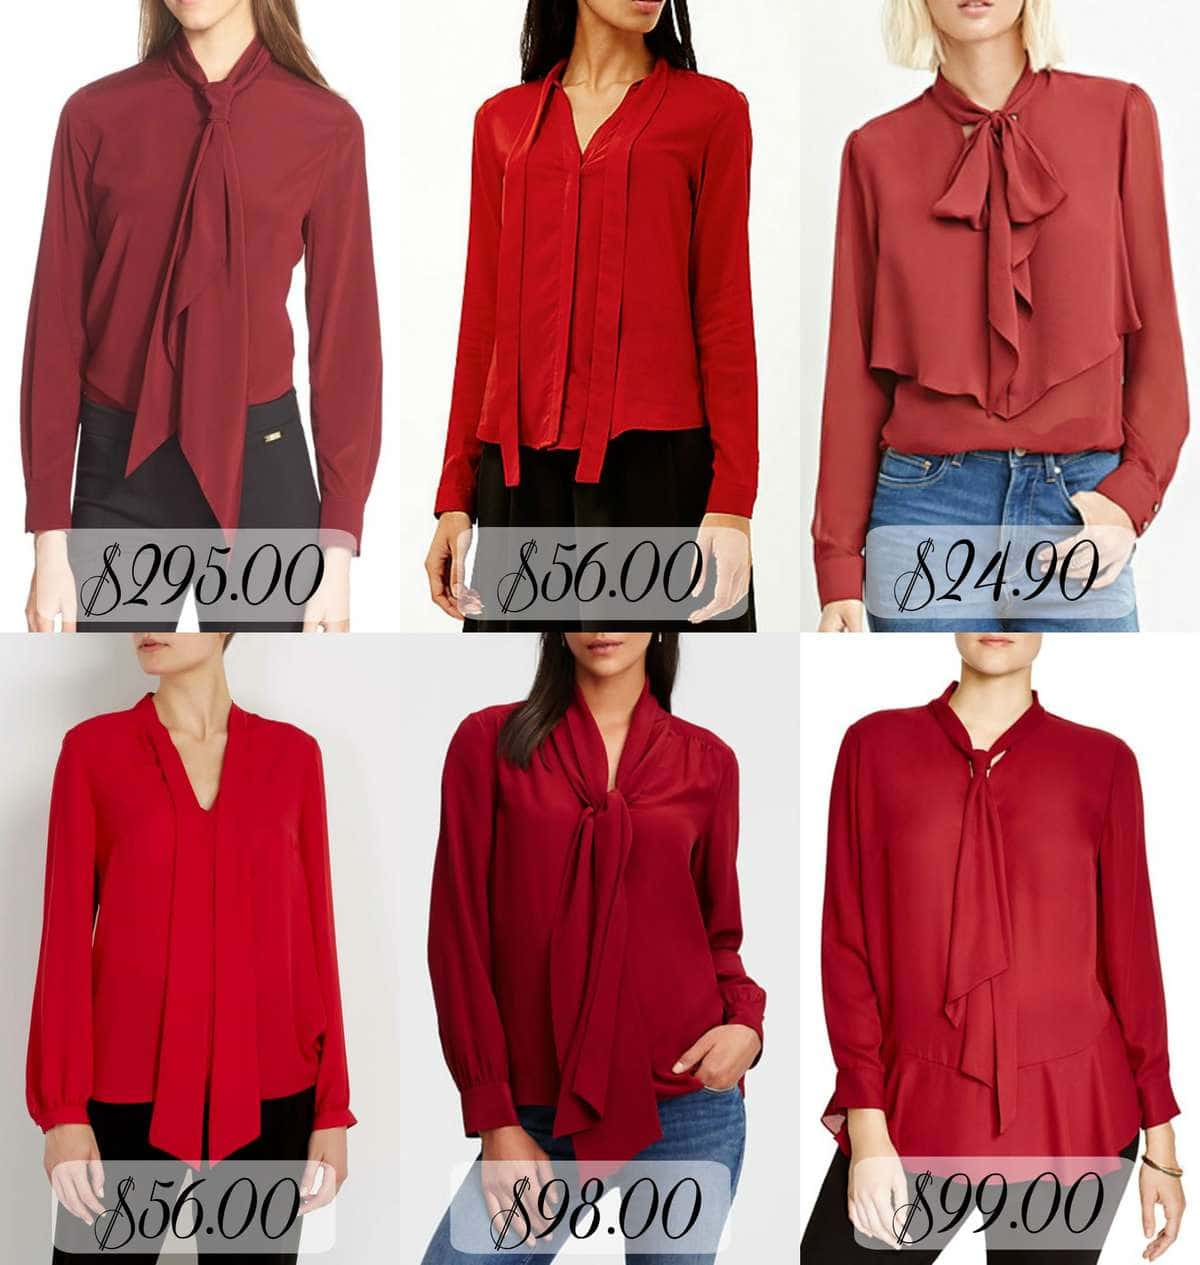 The Look for Less - Red Tie Neck Blouses